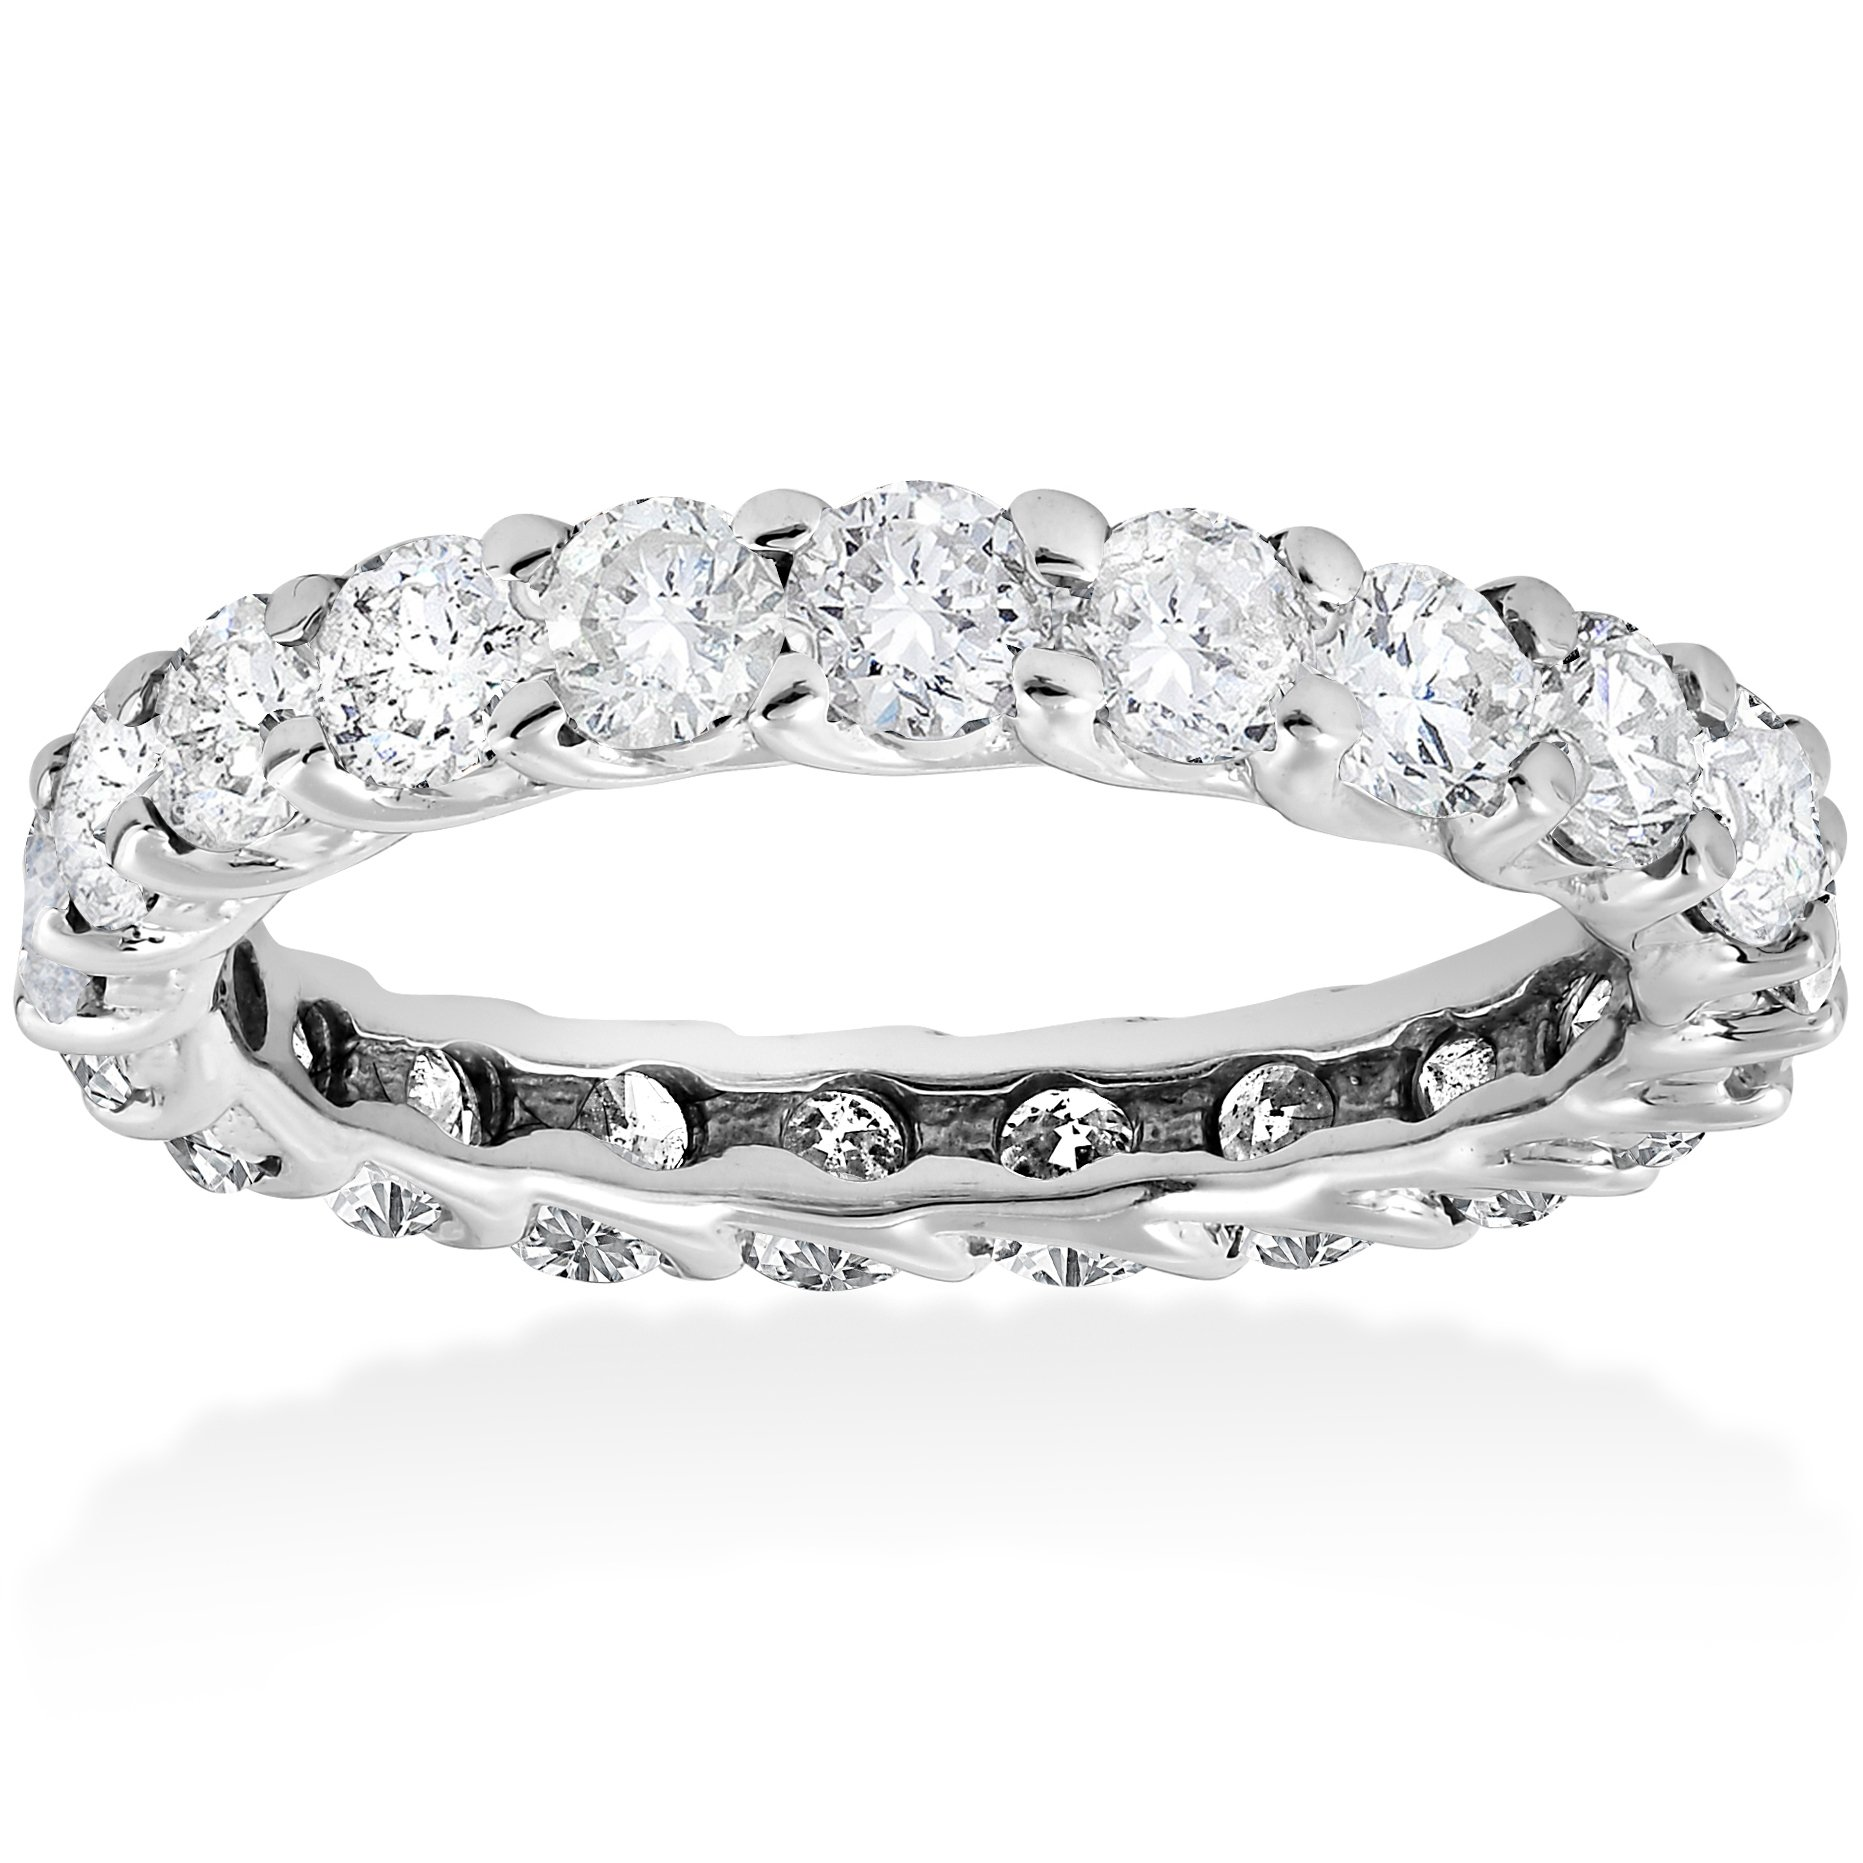 3ct Trellis Diamond Eternity Ring 14K White Gold